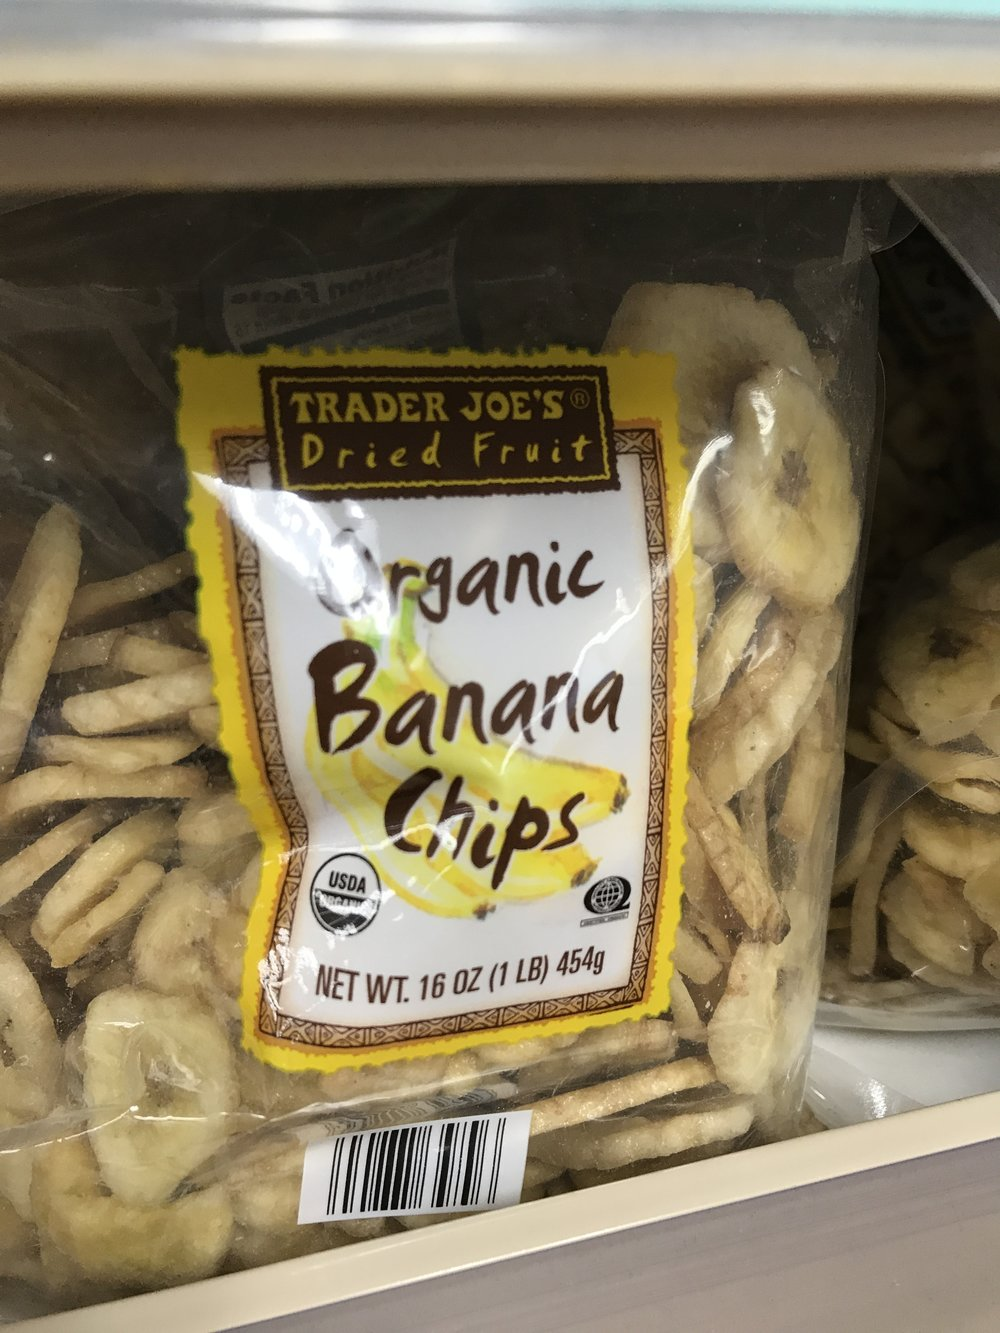 We love Trader Joe's dried fruit and nuts as soy-free snacks.